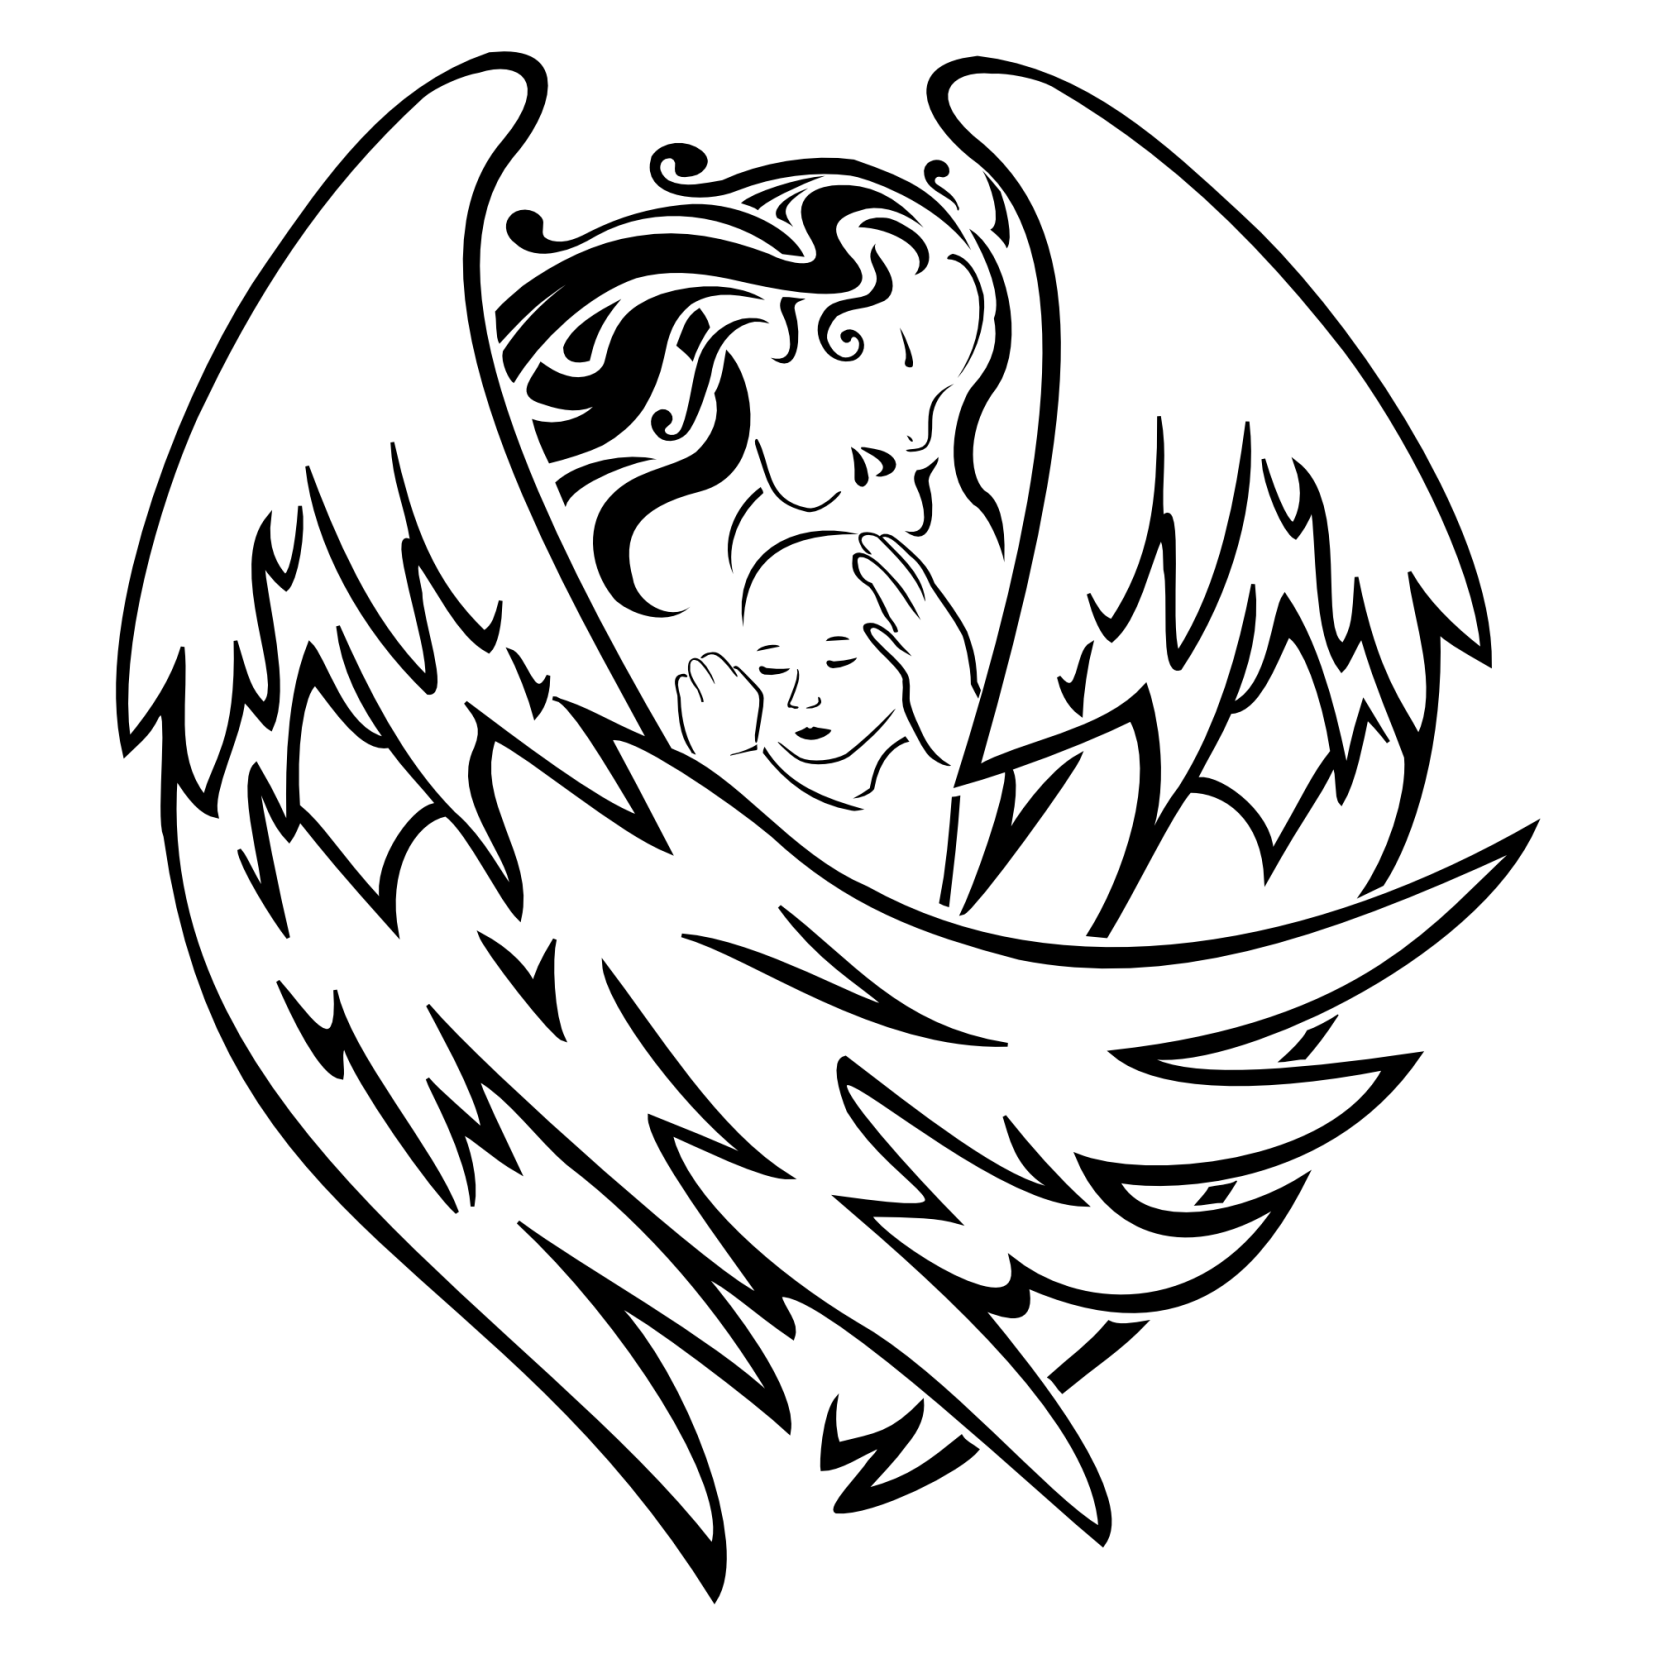 1654x1654 Tattoo Of Angel And Baby, Birth, Protection, Love Tattoo